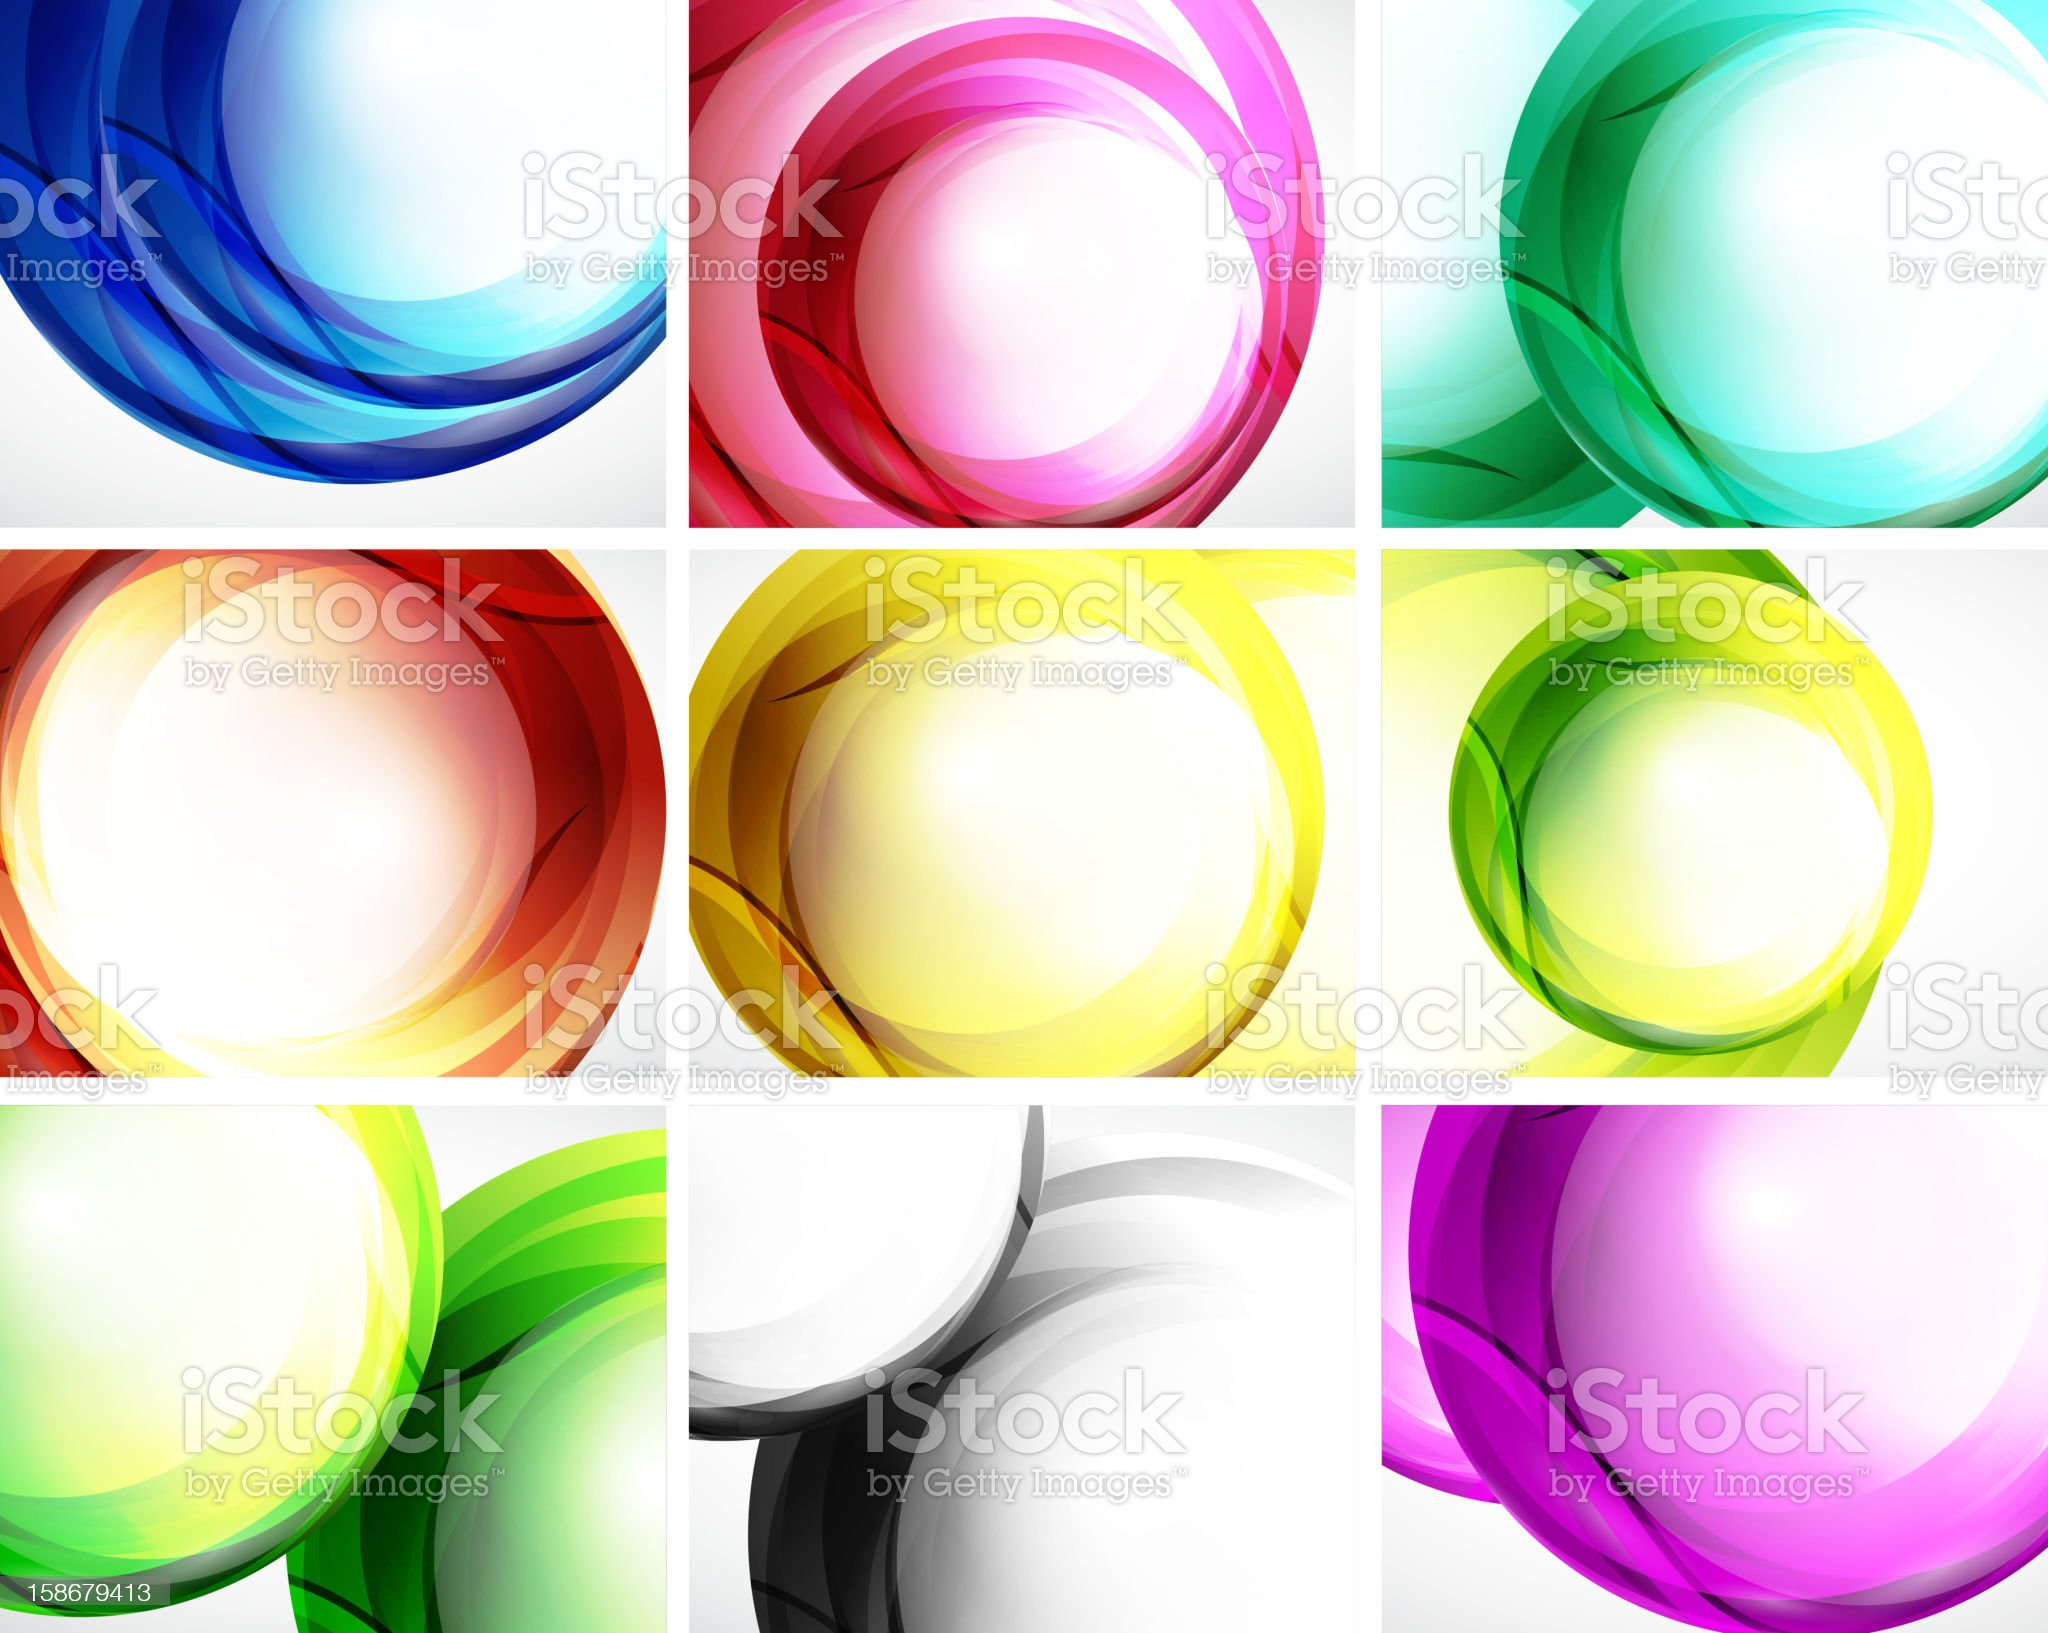 Set of colorful swirl backgrounds royalty-free stock vector art